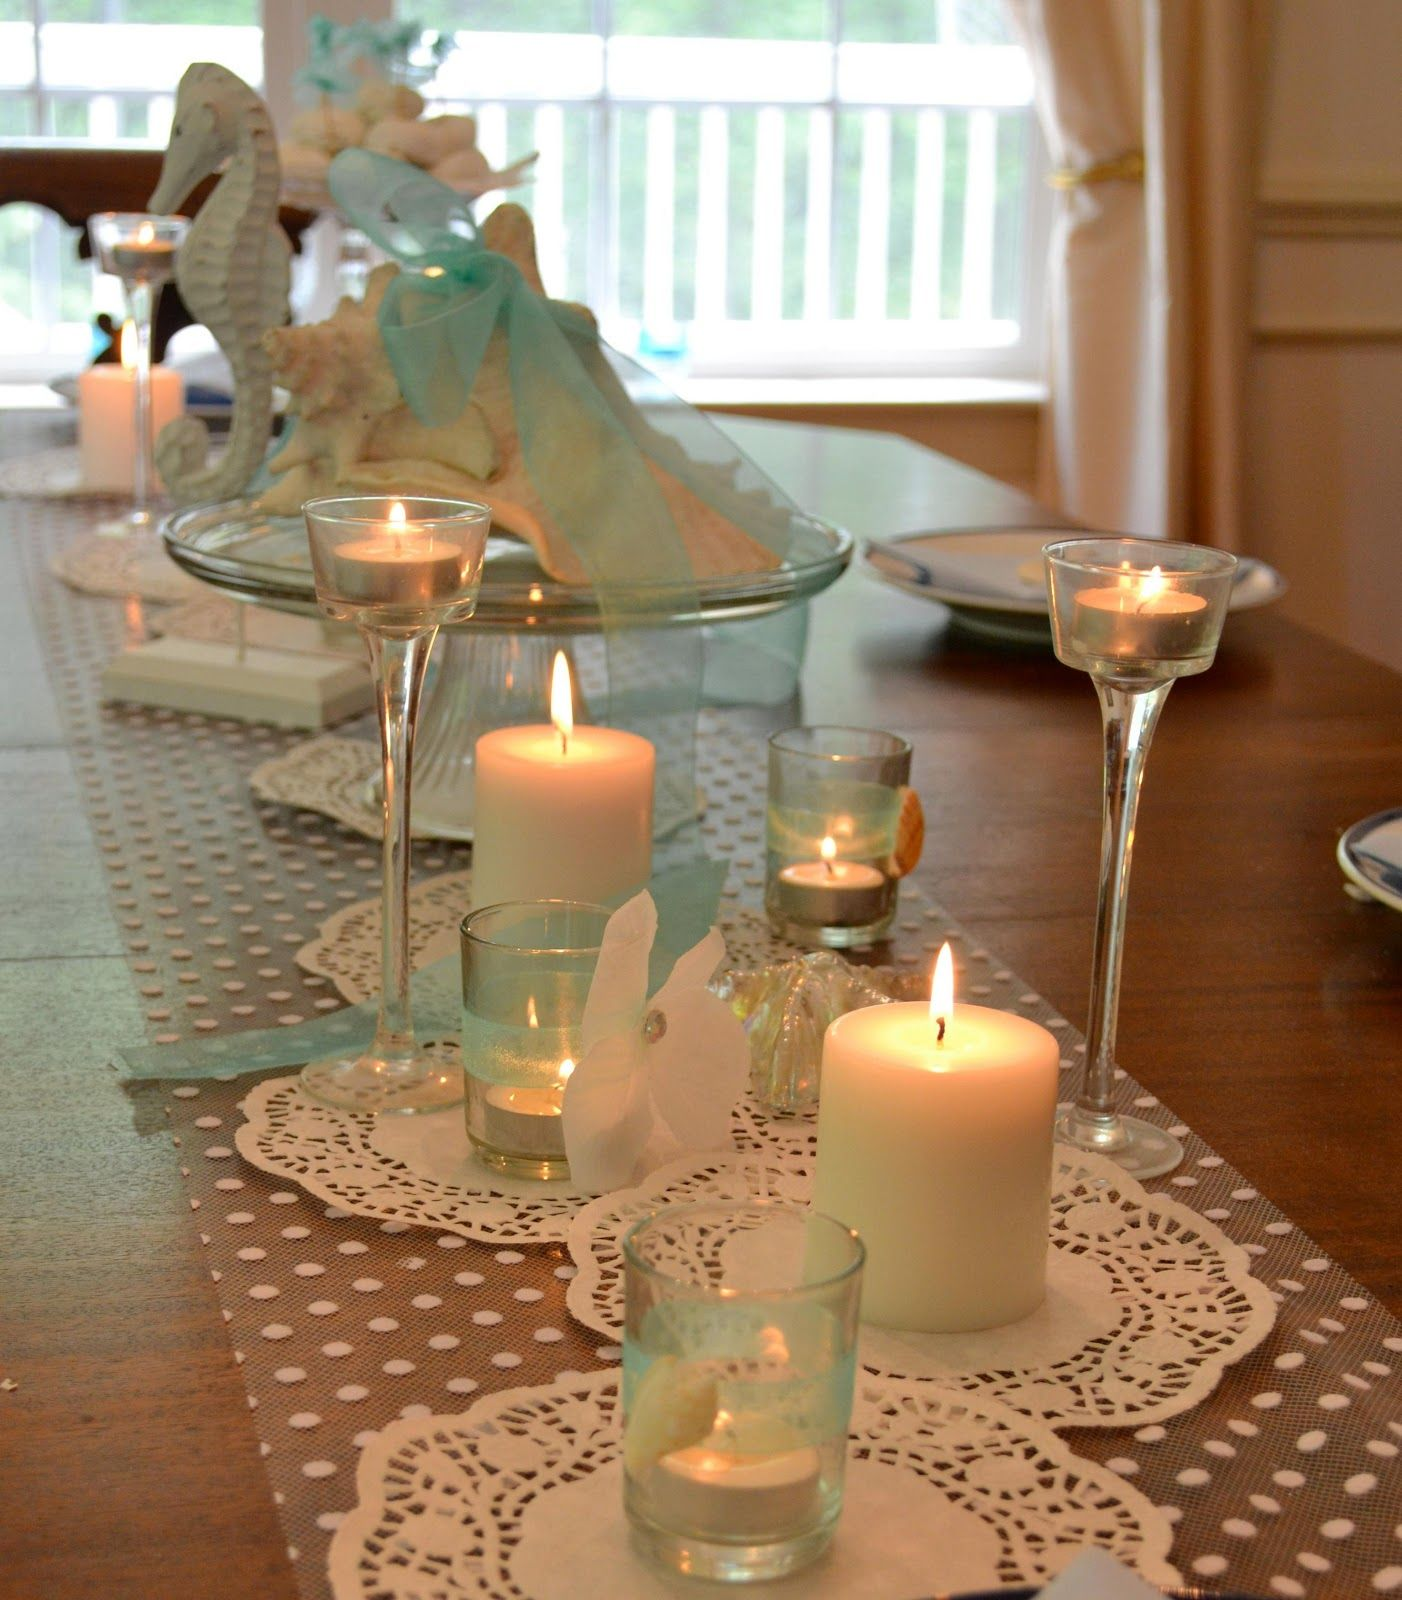 Beach bridal shower decorations cute ideas beach Wedding shower centerpieces